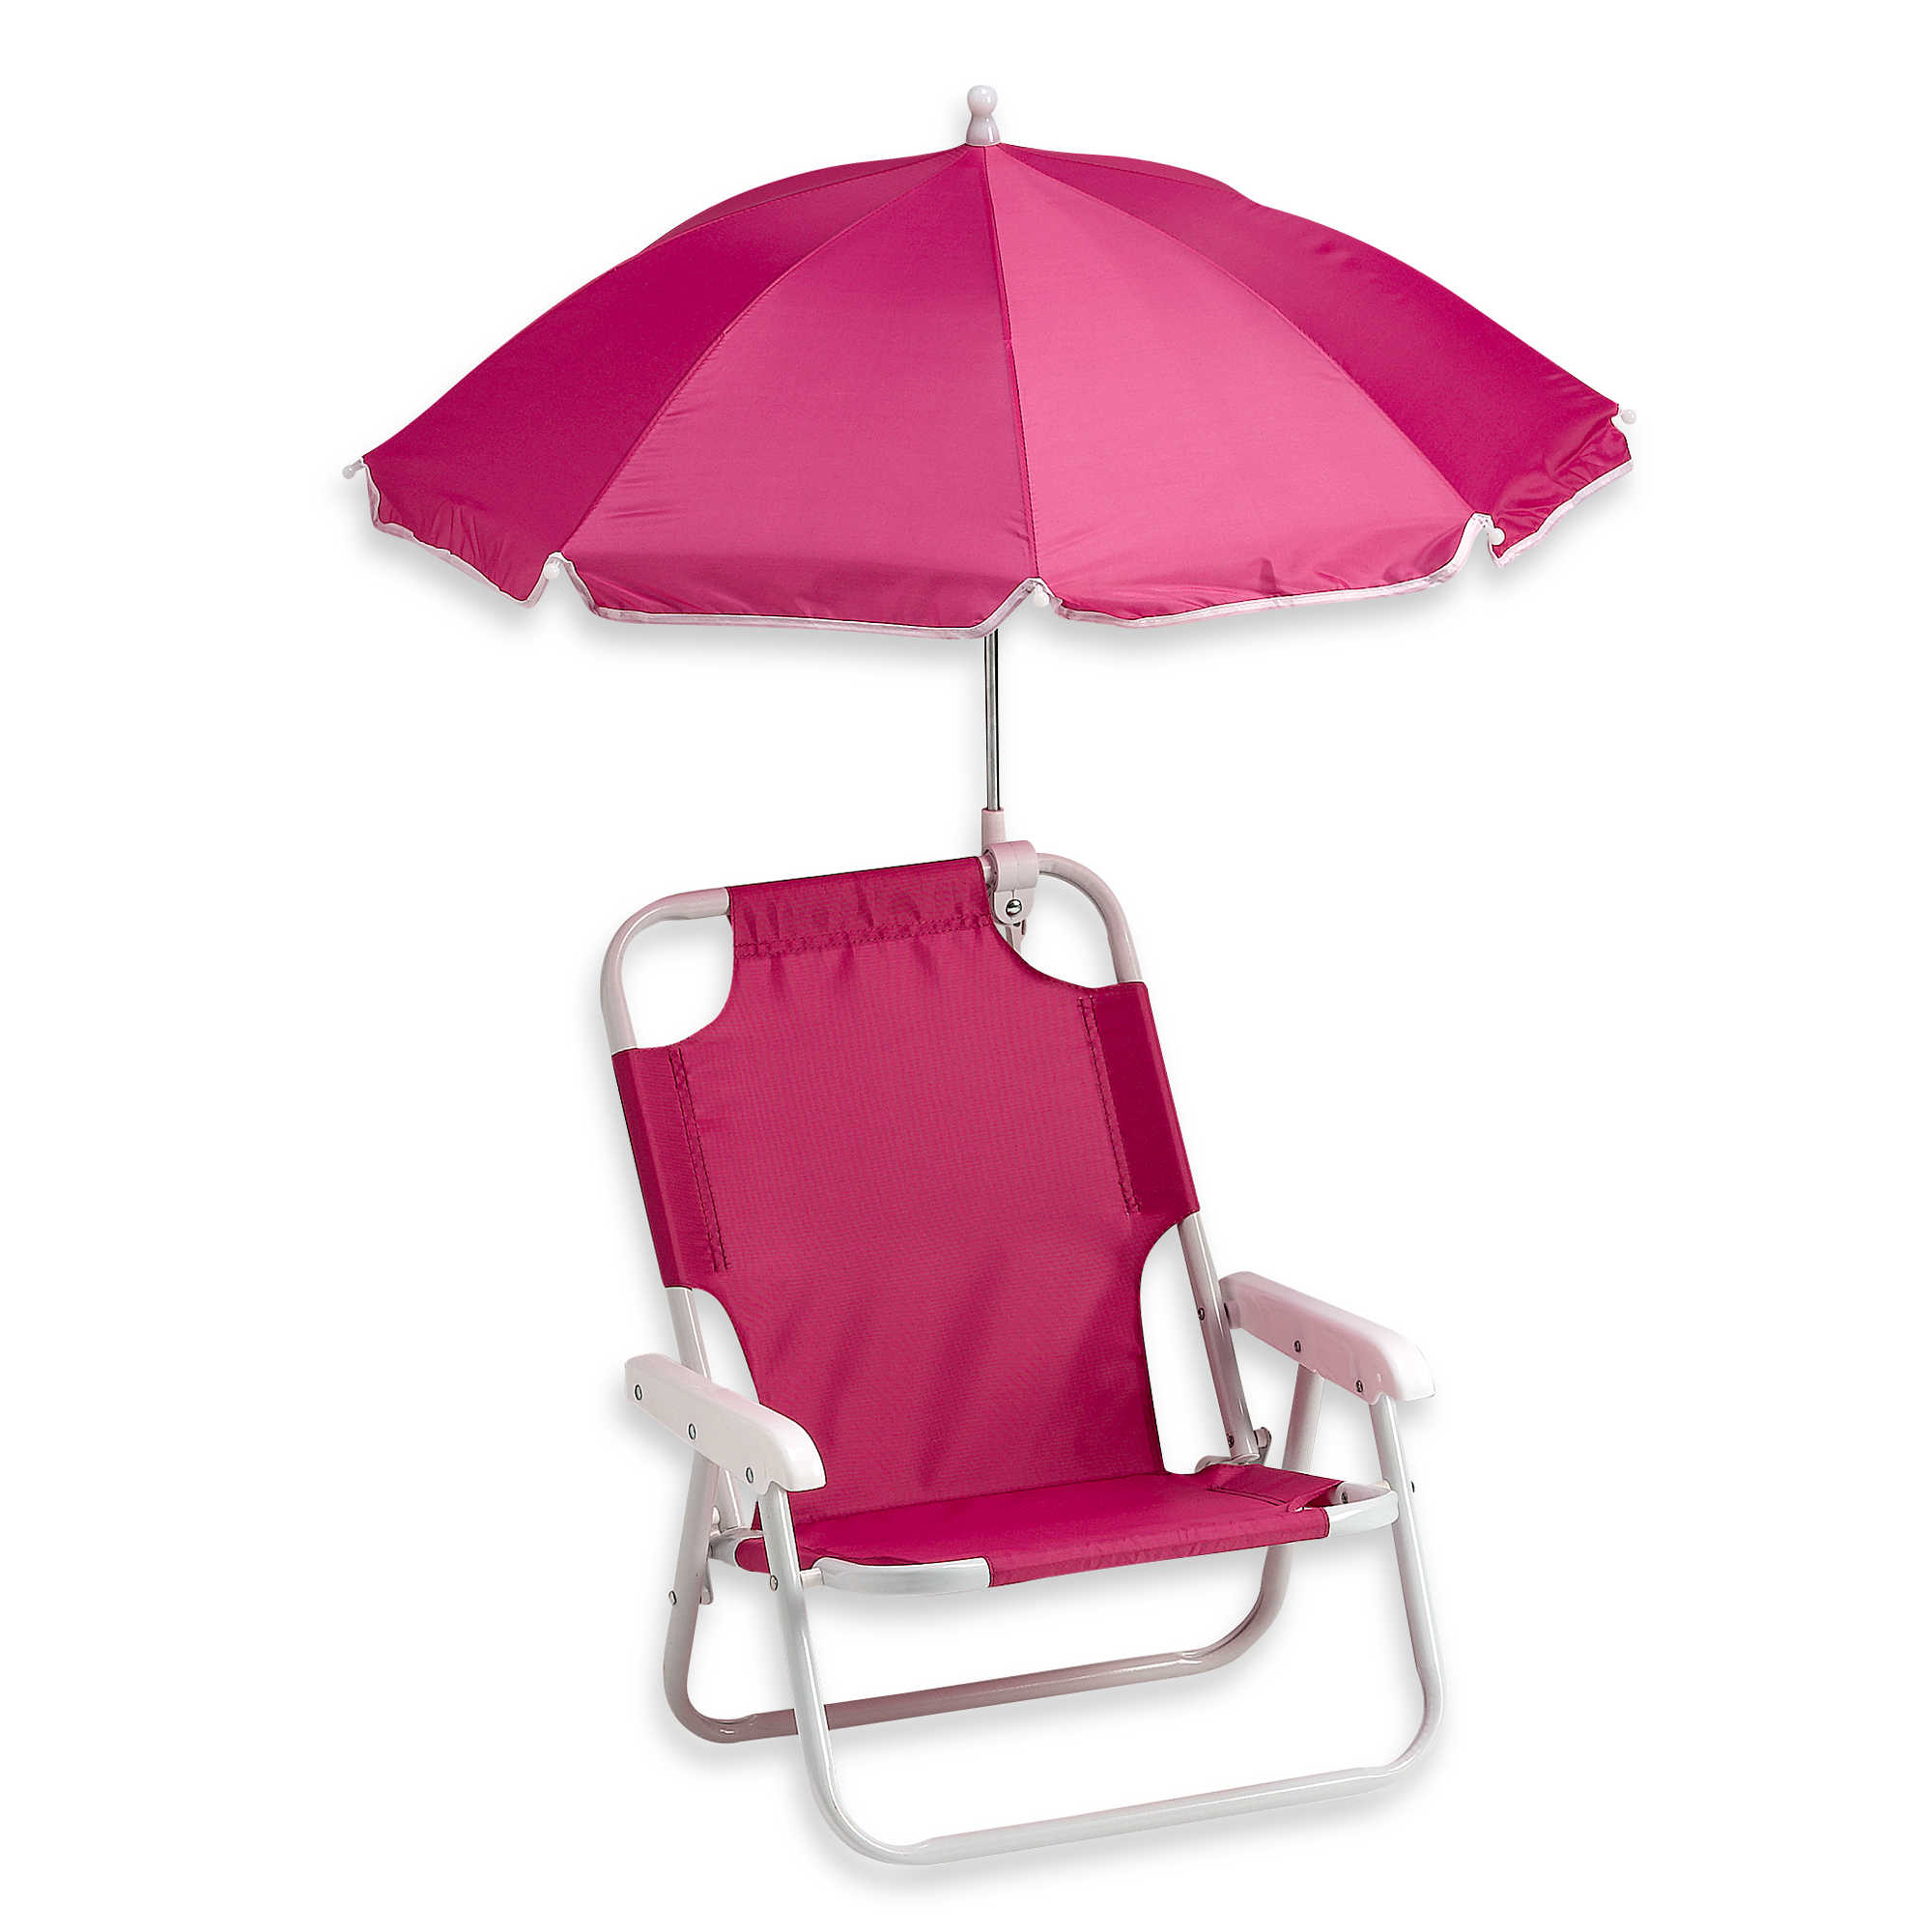 children s beach chair with umbrella baby vibrating argos folding purple pumpkin gifts